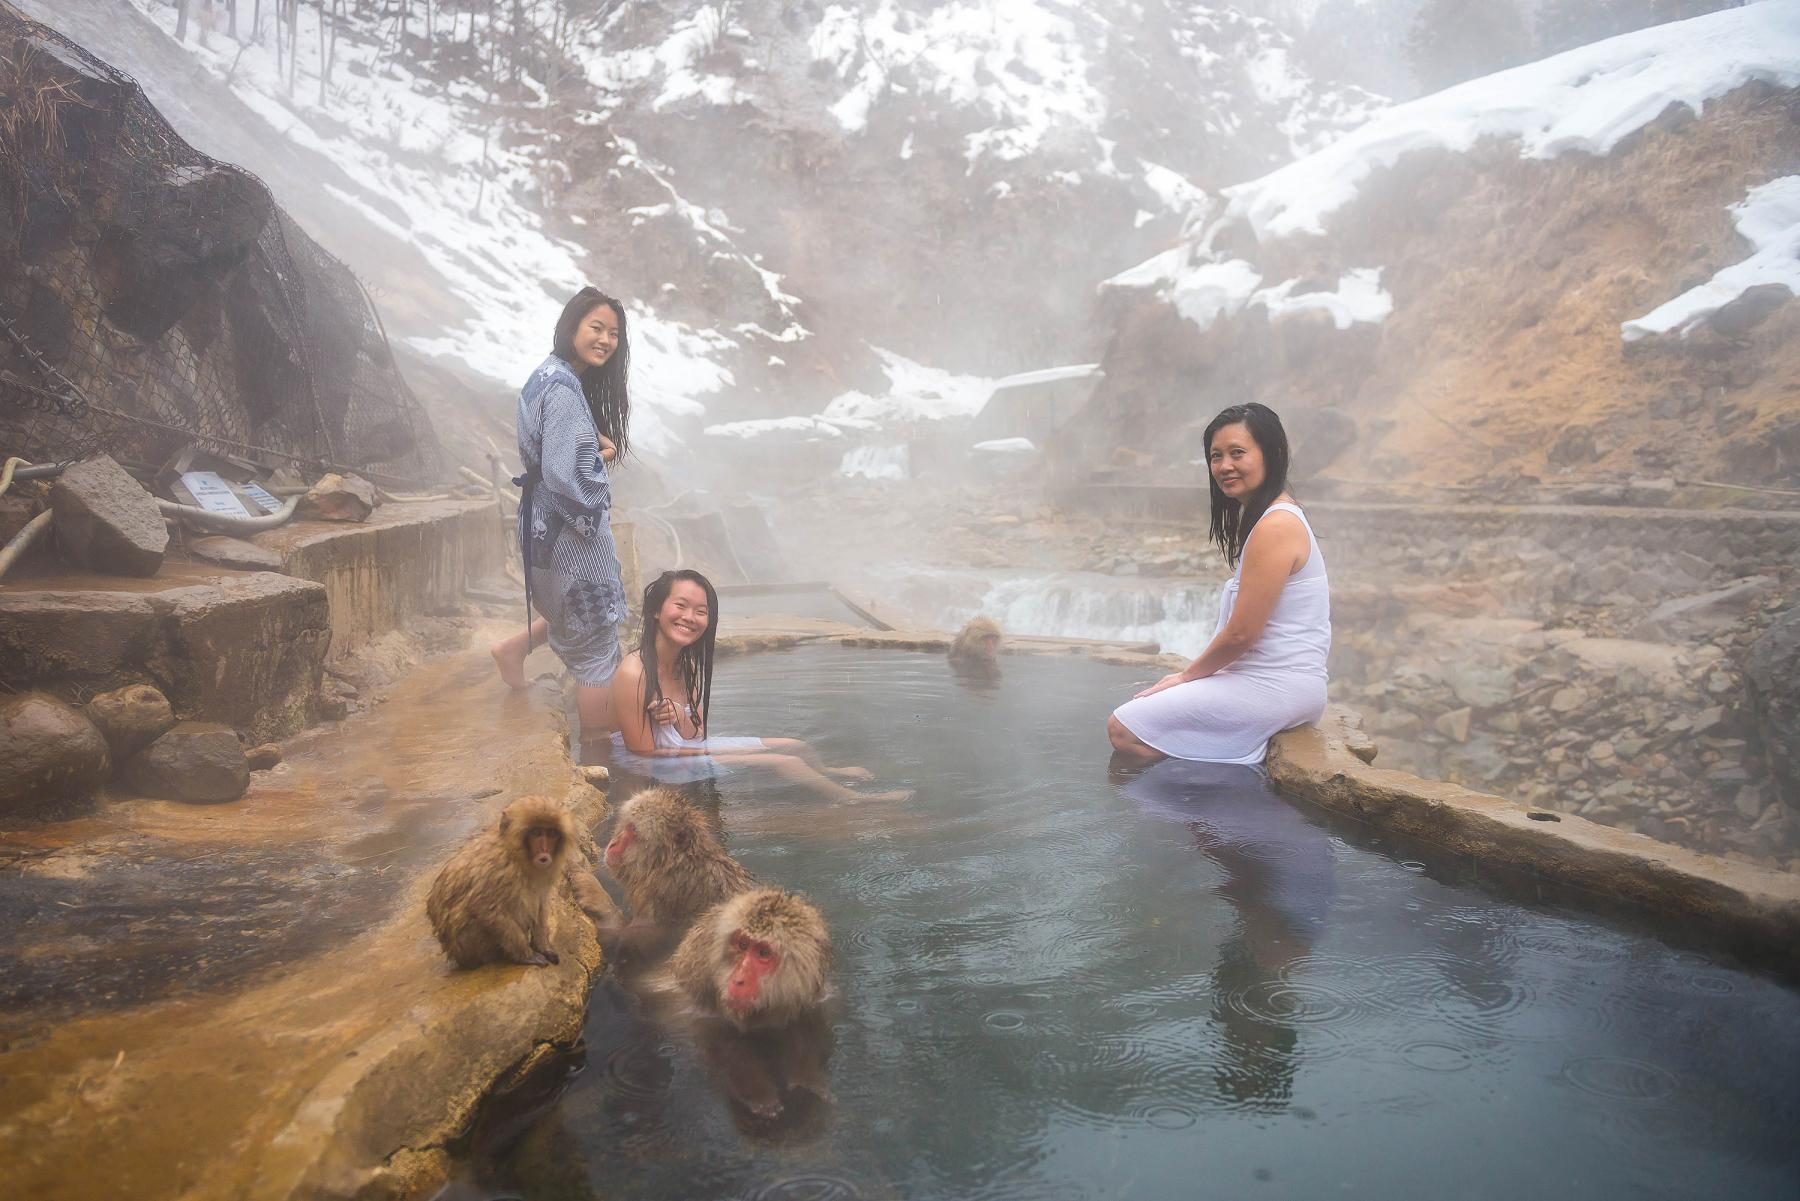 Tokyo + Snow Monkeys (new itinerary, foodies will love, semi free & easy) starting at Japan